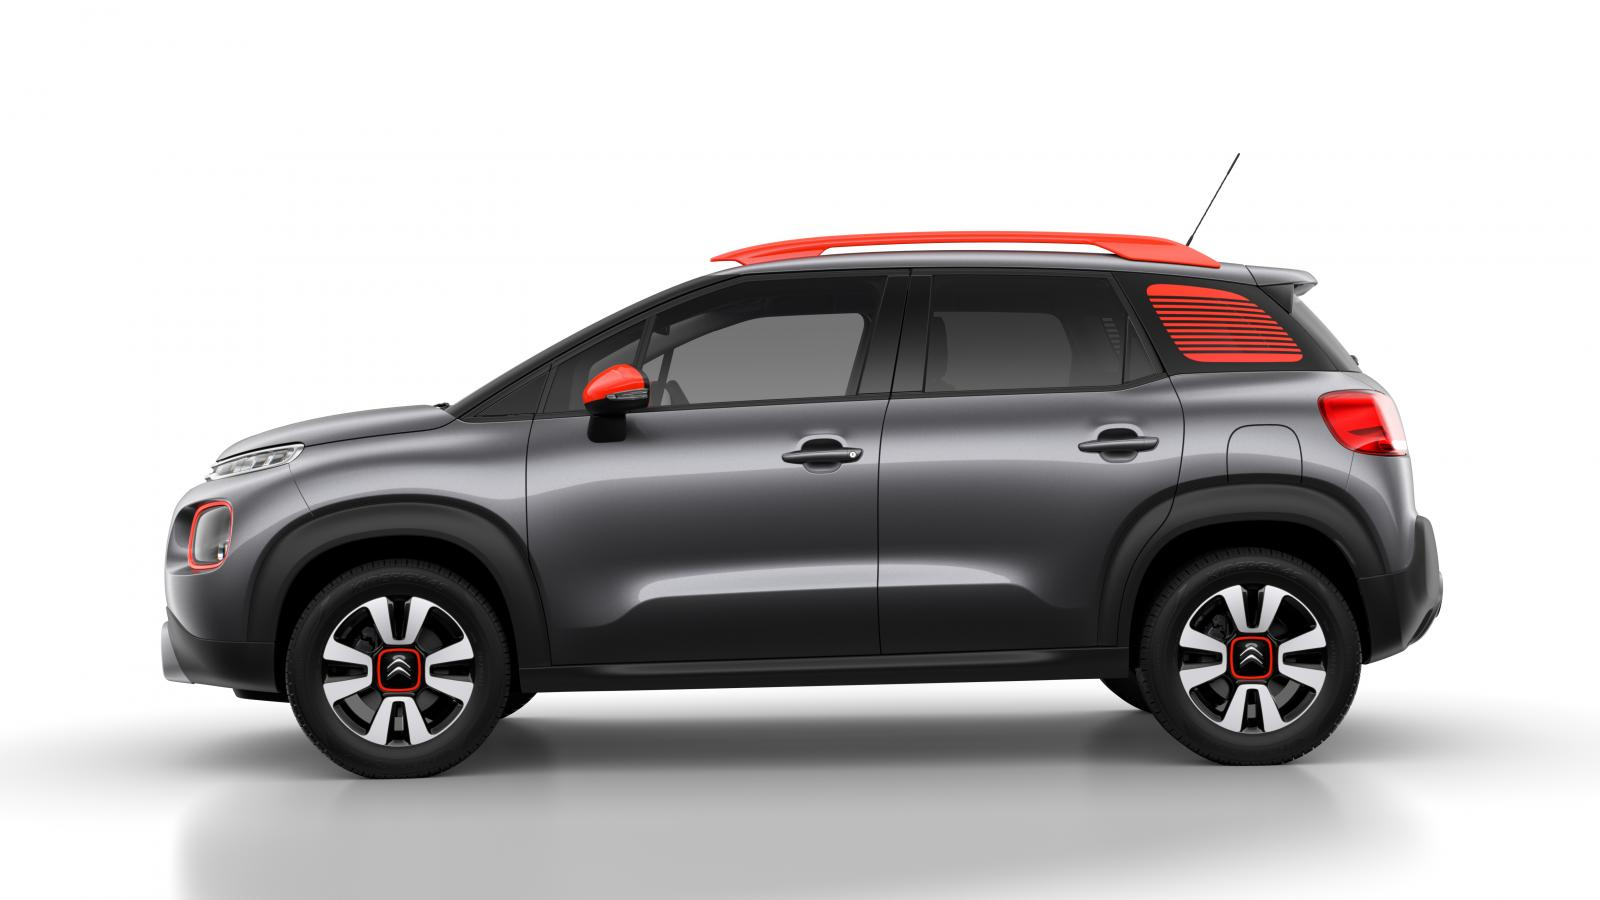 C3 Aircross Compact SUV - Misty Grey